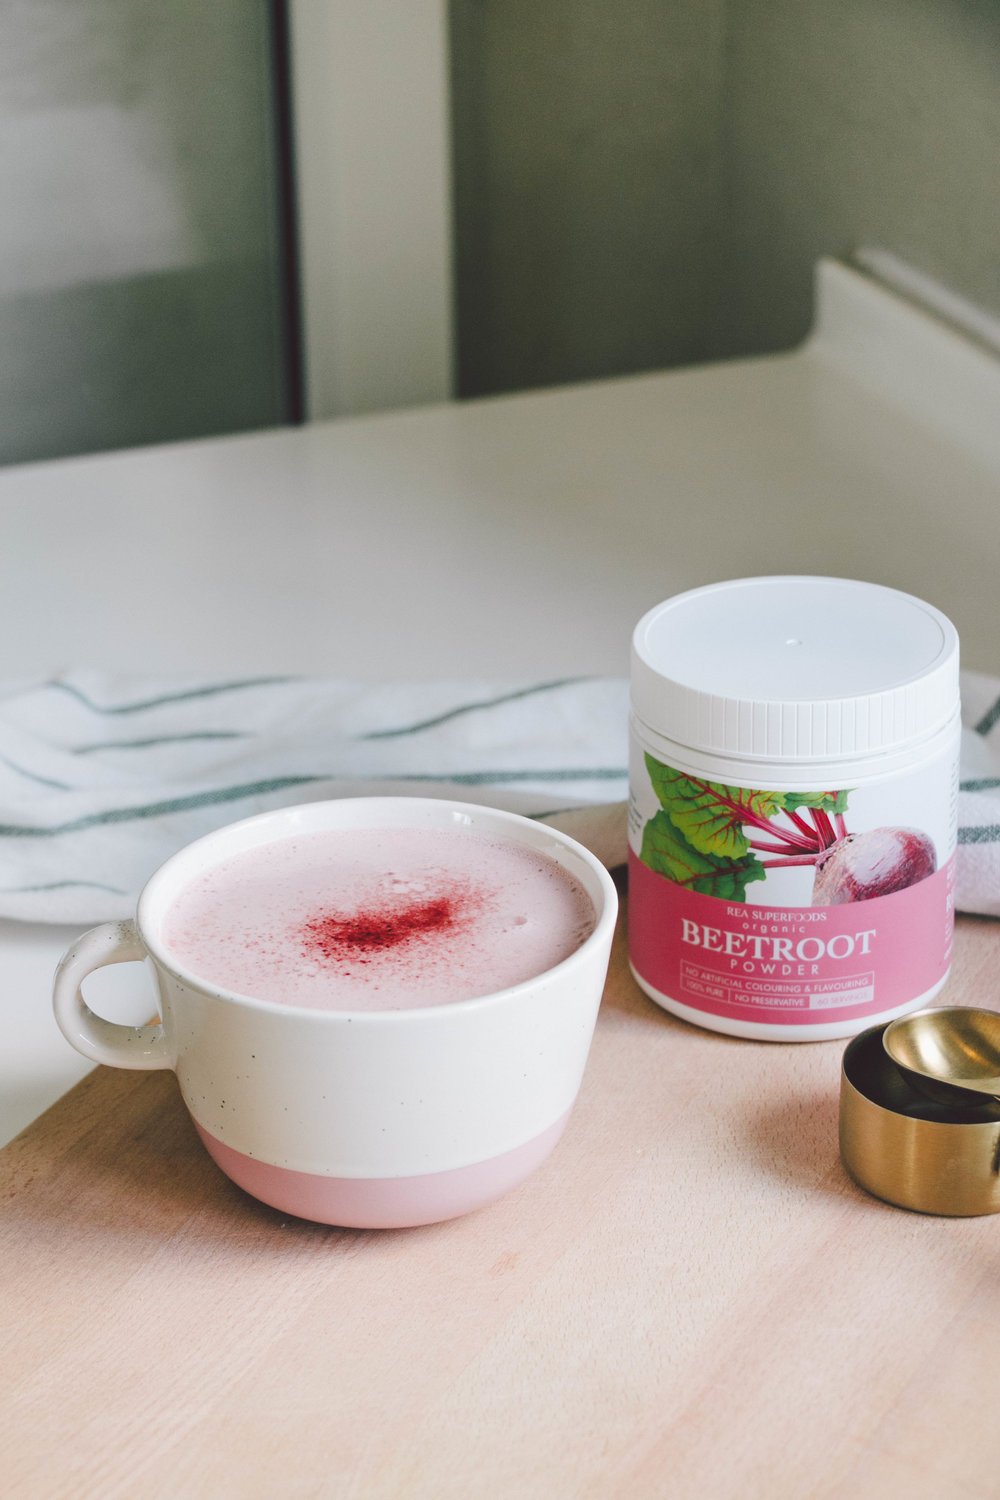 Ingredients - • ½ cup hot water• ½ cup almond milk, slightly warm (or 1 cup of almond milk if you don't want to use water)• 2 tsp REA Superfoods Beetroot powder• ½ tbsp coconut butter• ½ tsp ground ginger• ½ tsp ashwagandha• ¼ tsp cacao powder• Pinch of salt